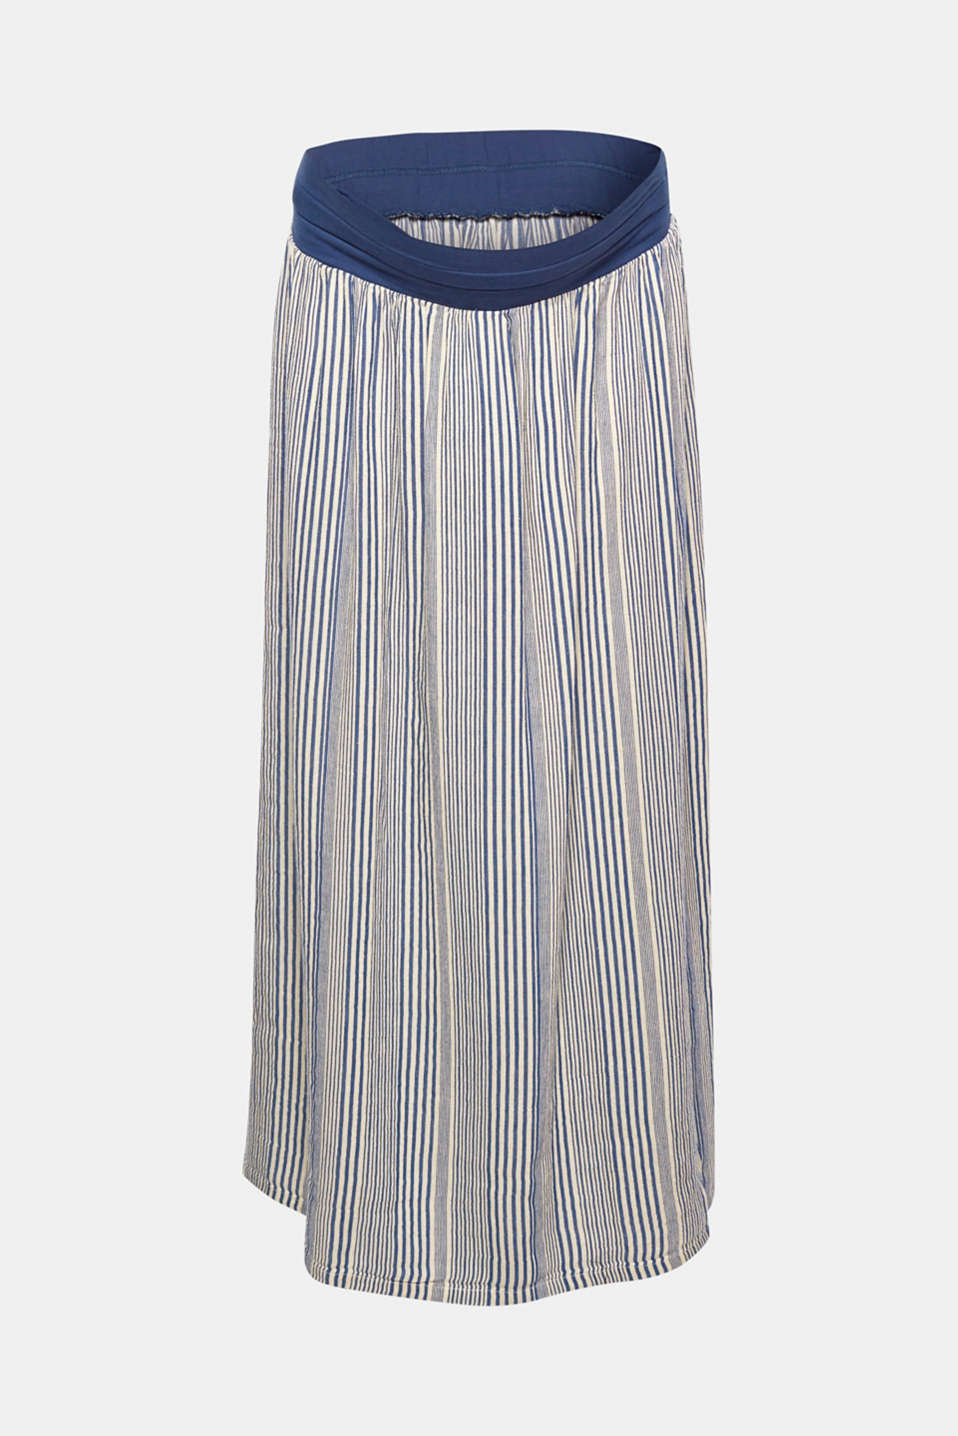 The trendily striped, cool linen blend fabric emphasises the airy look of this maxi skirt that comes with a supporting, under-bump waistband and deep side slits.